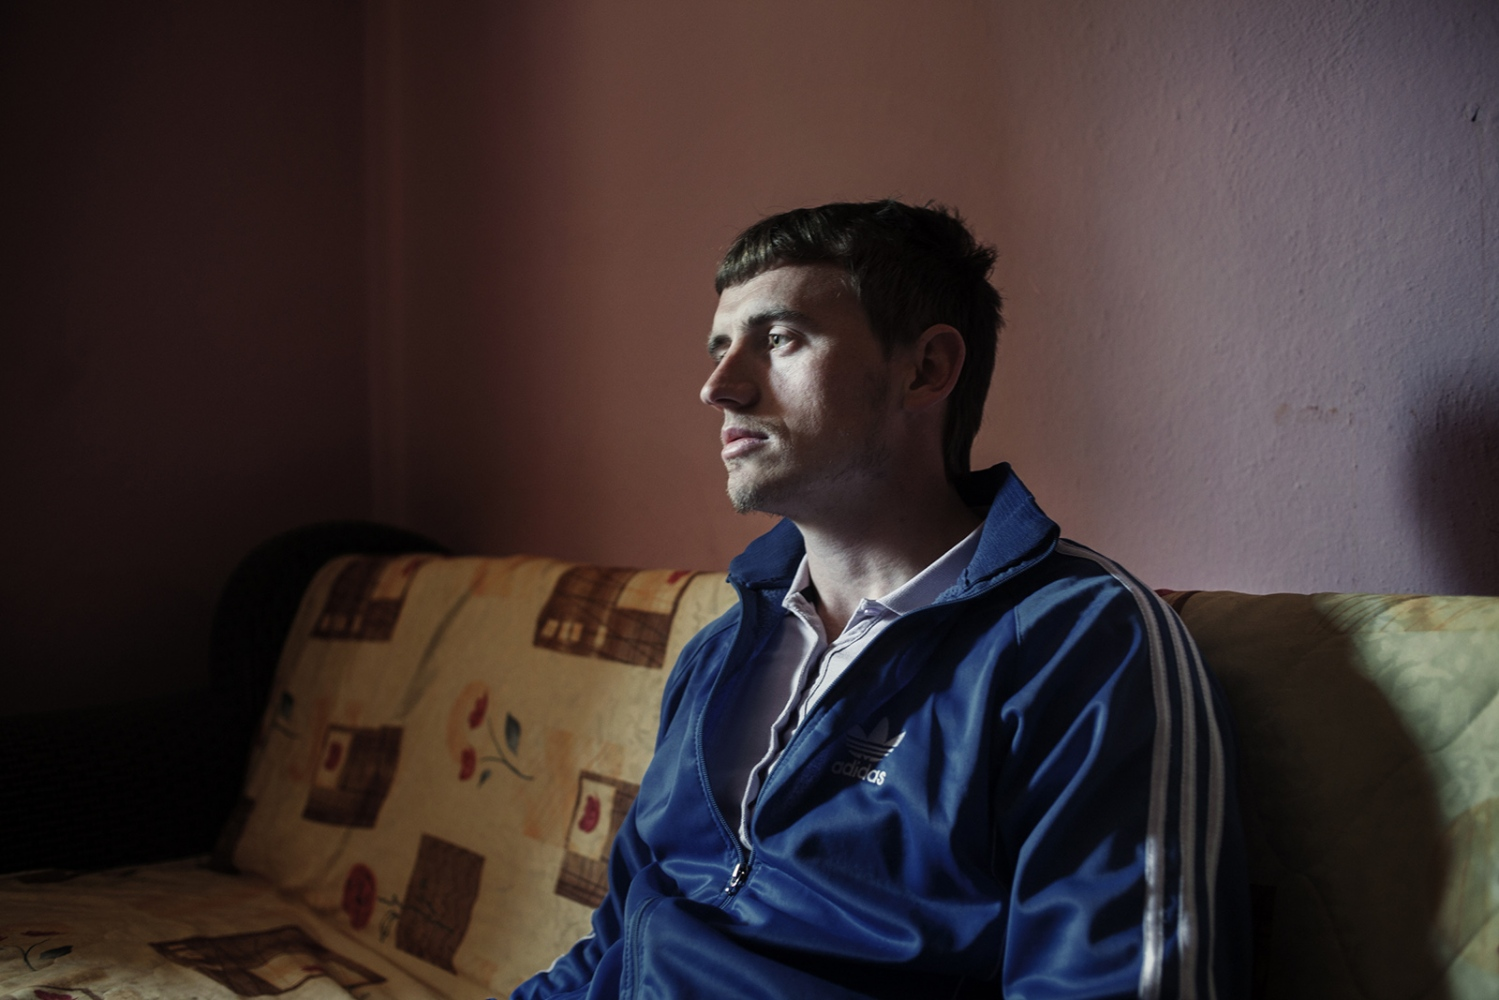 Kosova, Peja, 2012: Ardian Hoxha in seen in his living room. He's 22 years oldand he studies law at University of Pristina.